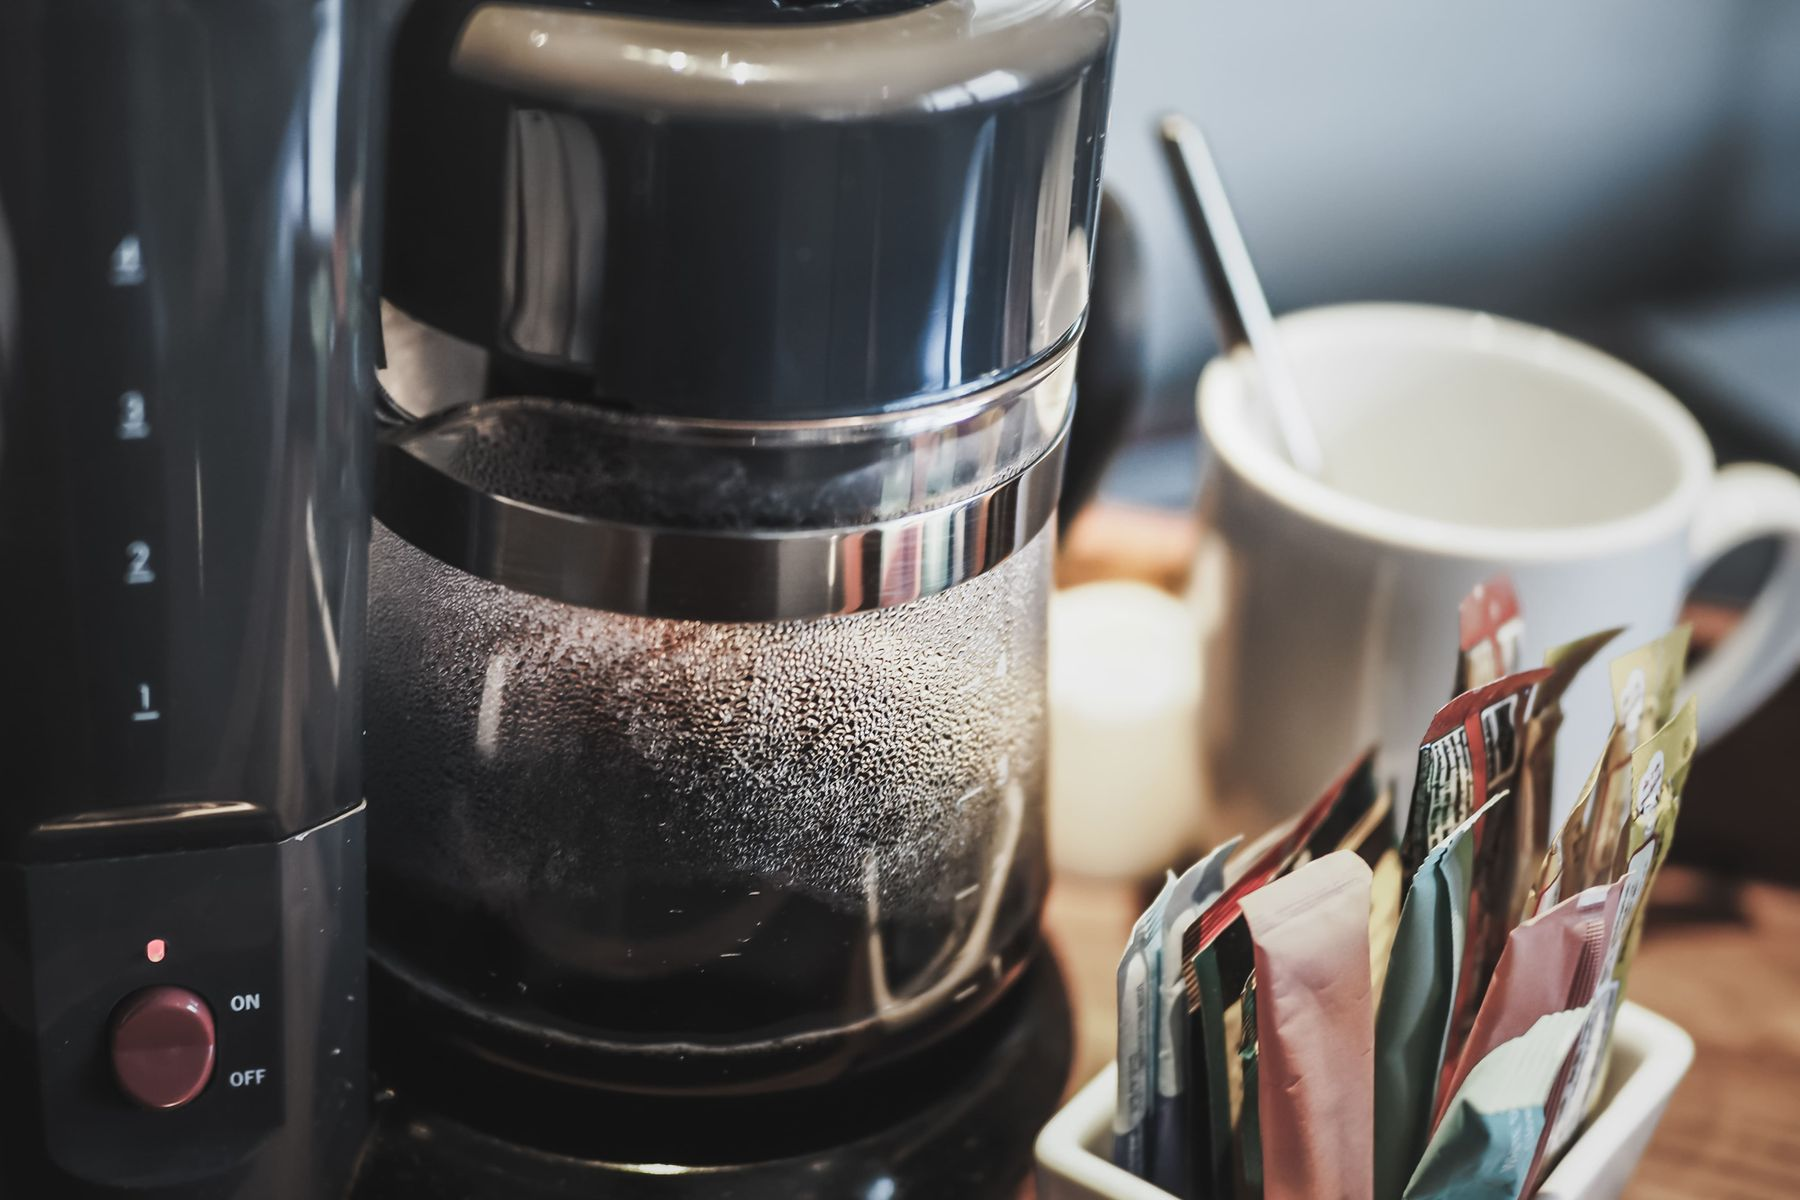 how to make filter coffee at home and clean a coffee maker